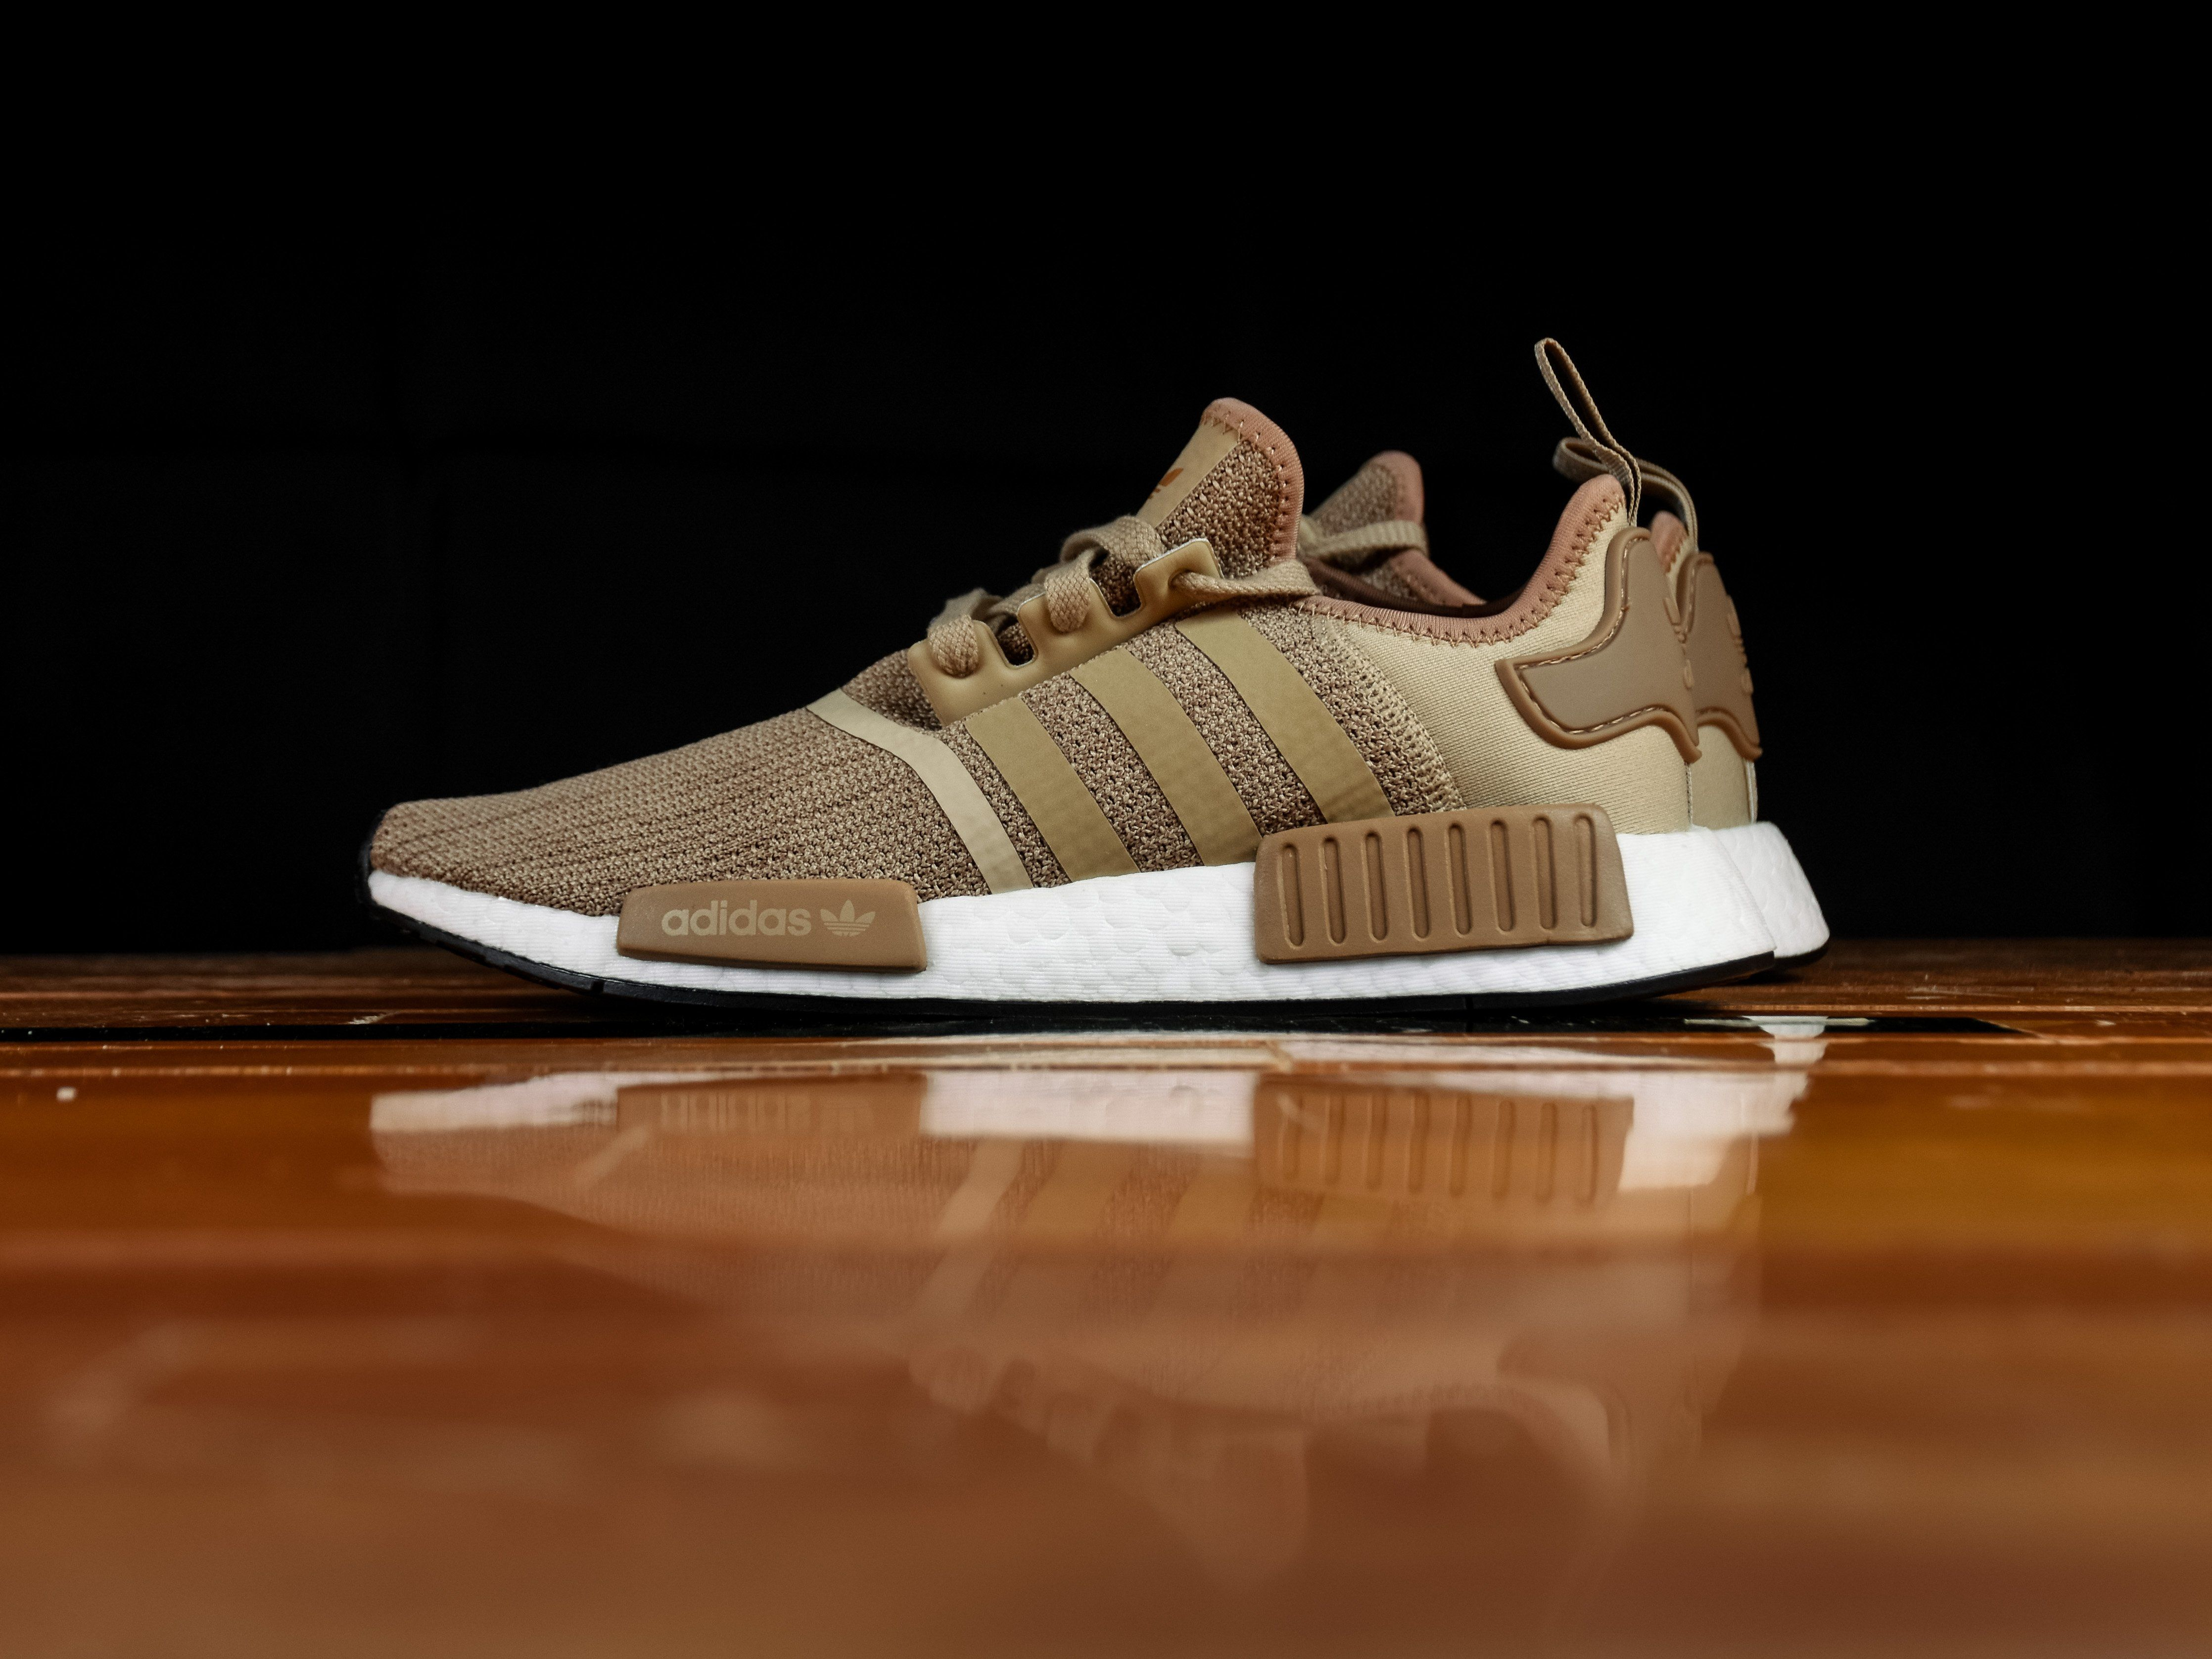 pretty nice 0d1ad db6b3 Men's Adidas NMD R1 'Gold' [B79760] | Adidas Shoes | Adidas ...